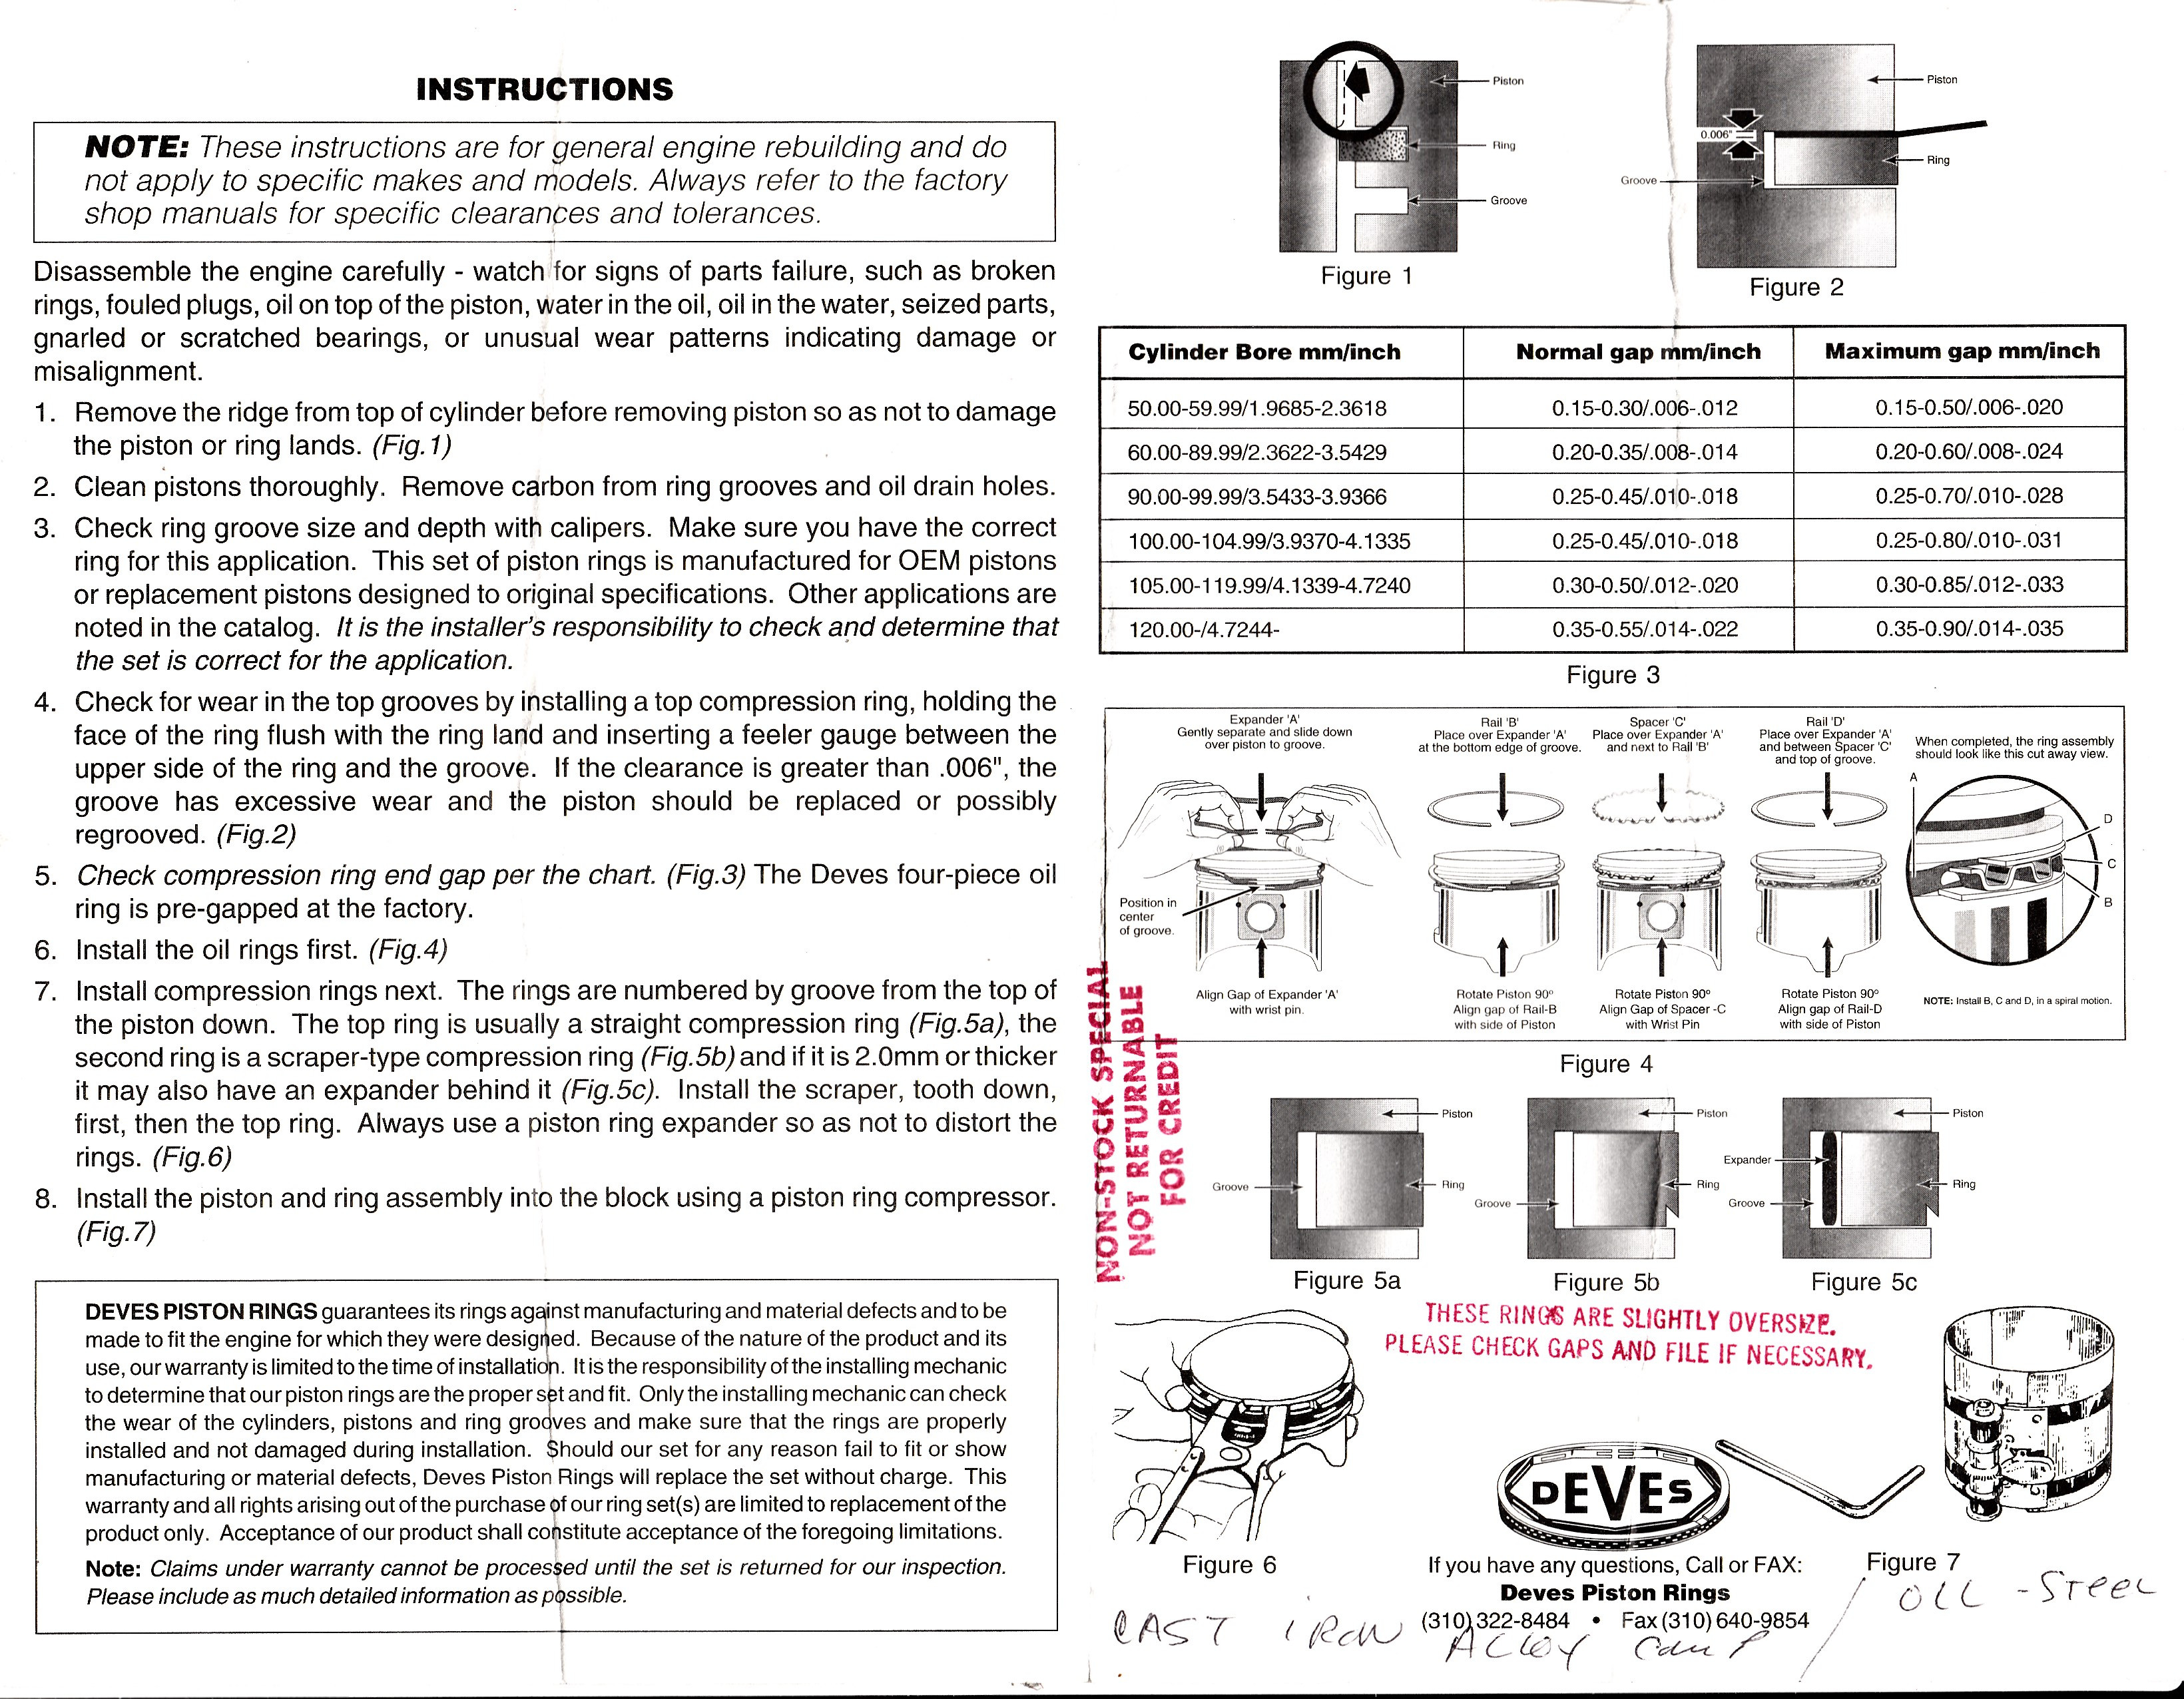 Installation instructions - Deves piston rings